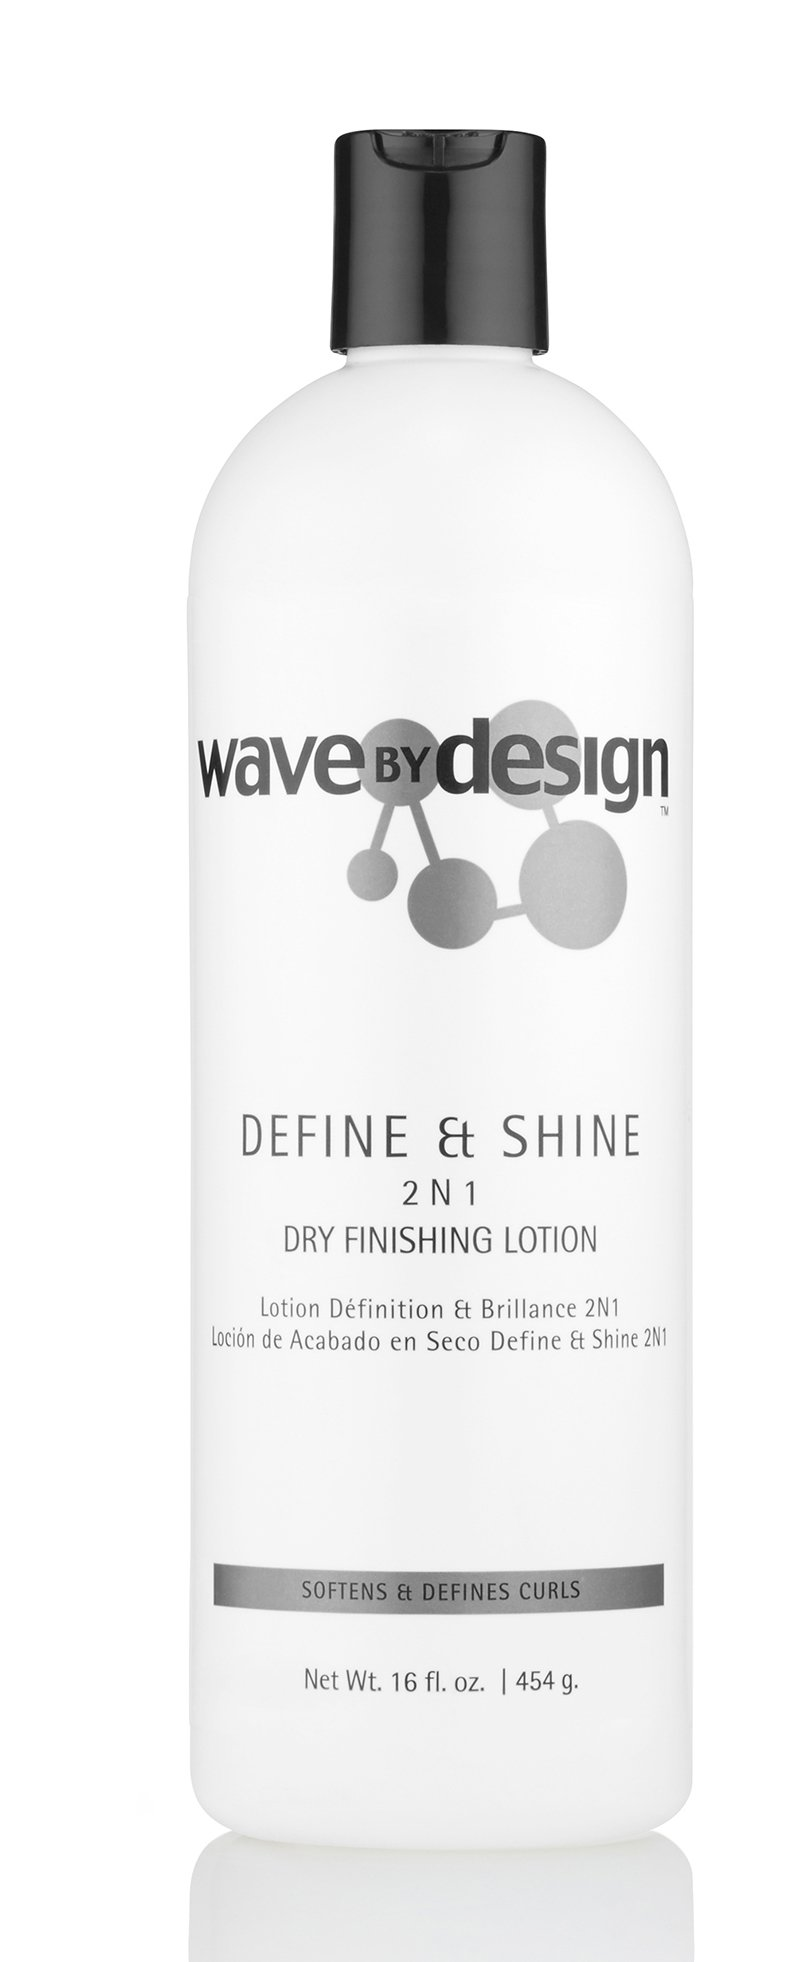 Design Essentials 2-N-1 Dry Finishing Lotion to Restore, Define & Revitalize Waves, Curls, and Texturized Styles -Wave By Design Collection, 16oz. by Design Essentials